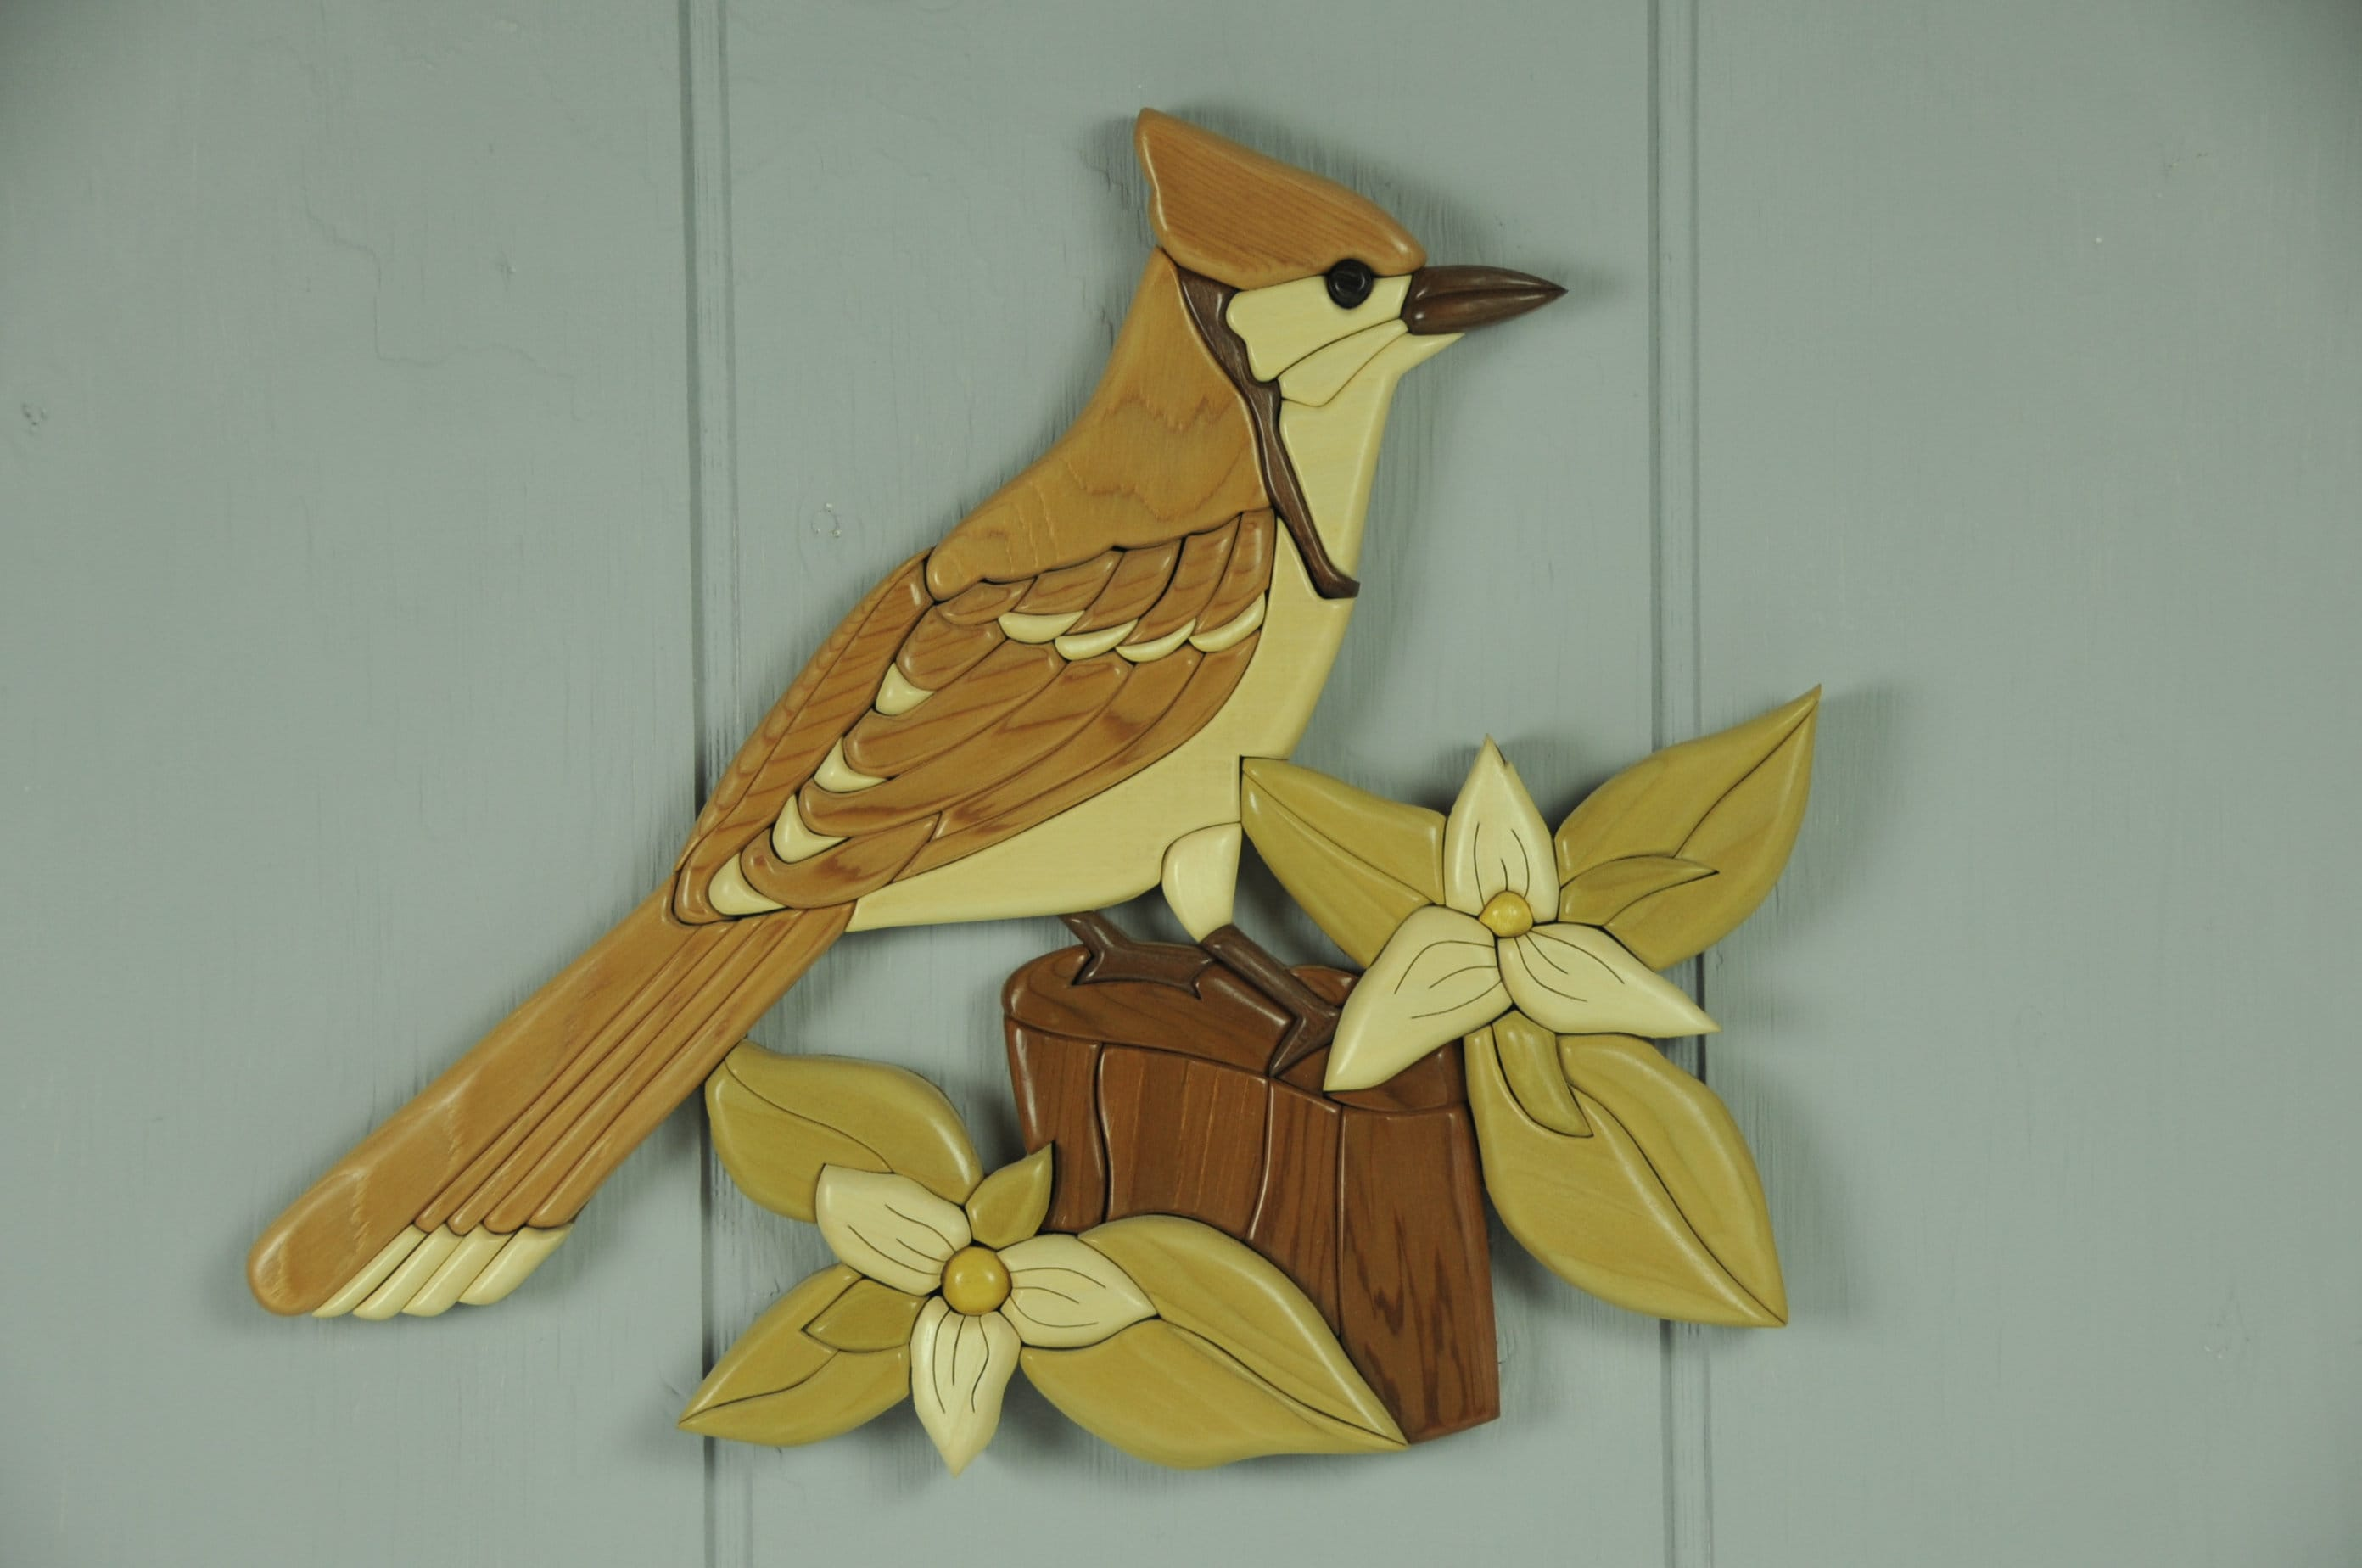 Unusual Birds In Flight Wall Decor Pictures Inspiration - The Wall ...